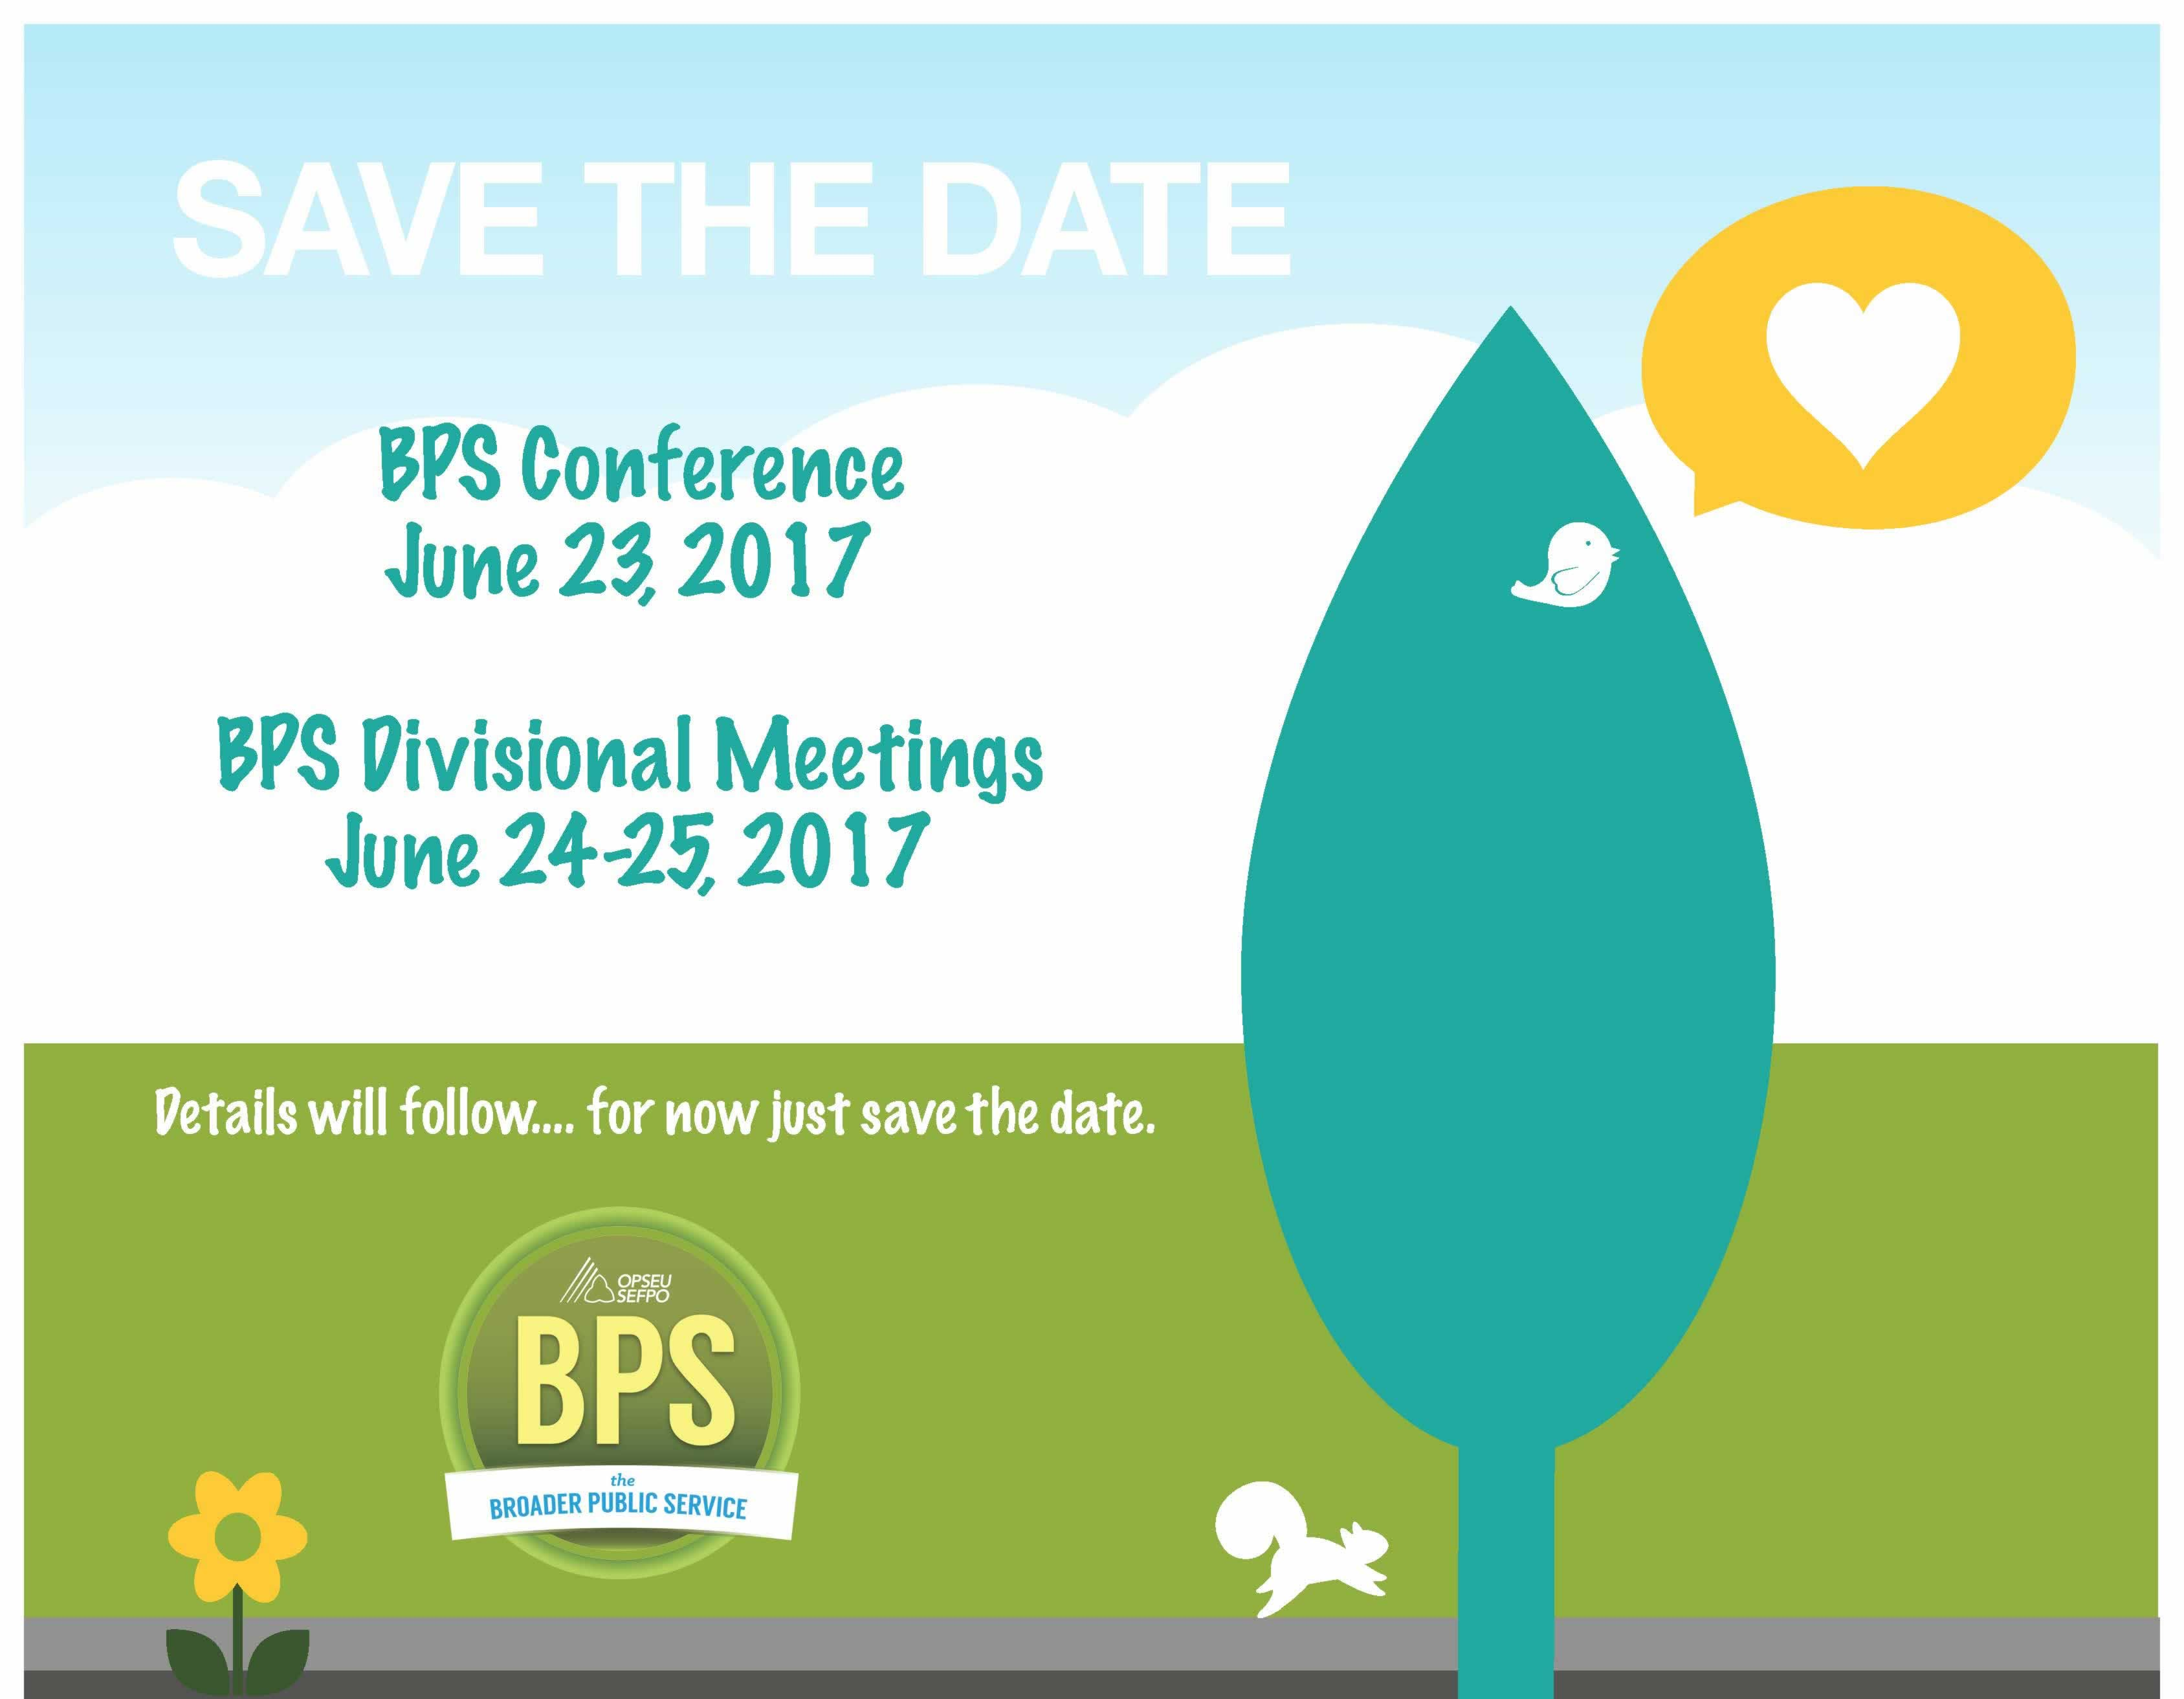 Save the Date - BPS Conference, June 23, 2017